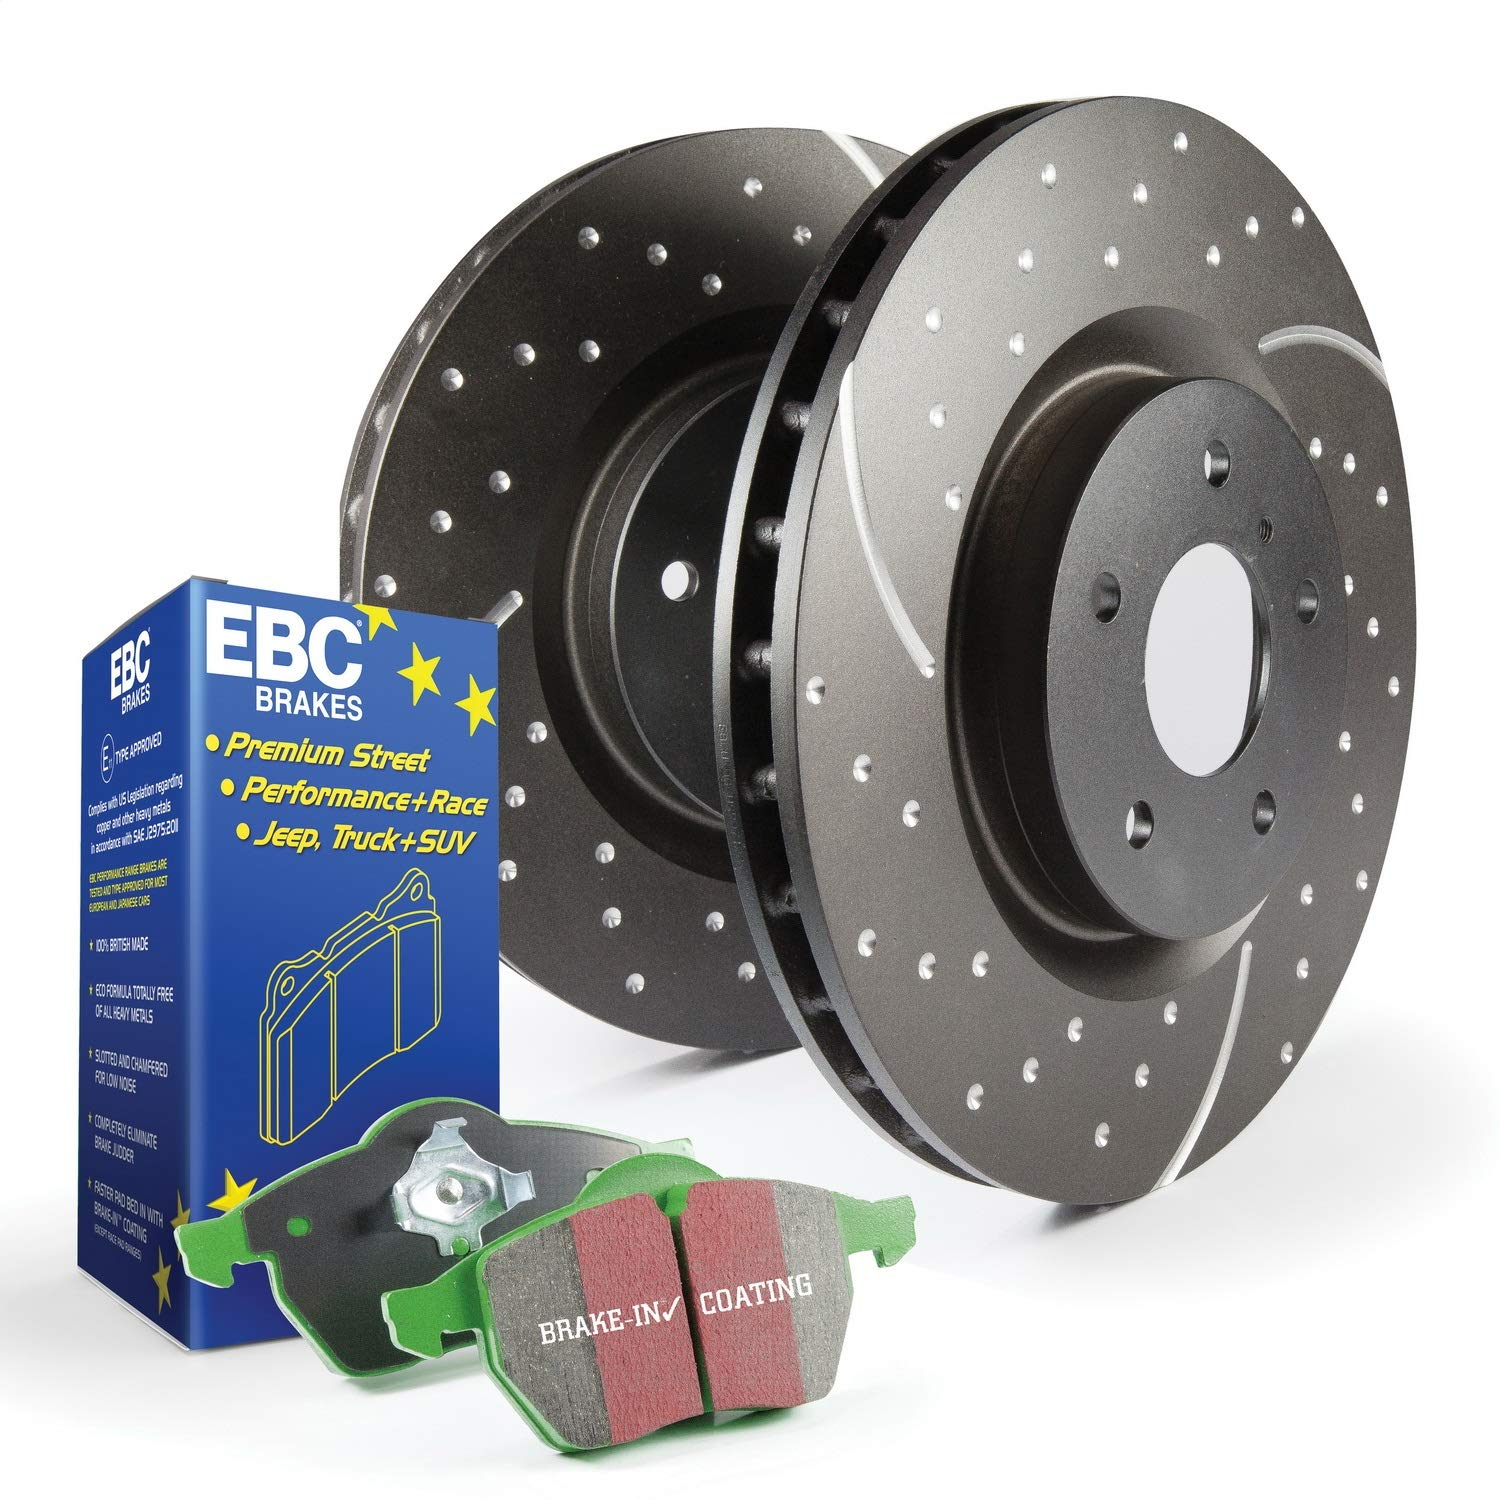 EBC S3KF1125 Stage-3 Truck and SUV Brake Kit by EBC